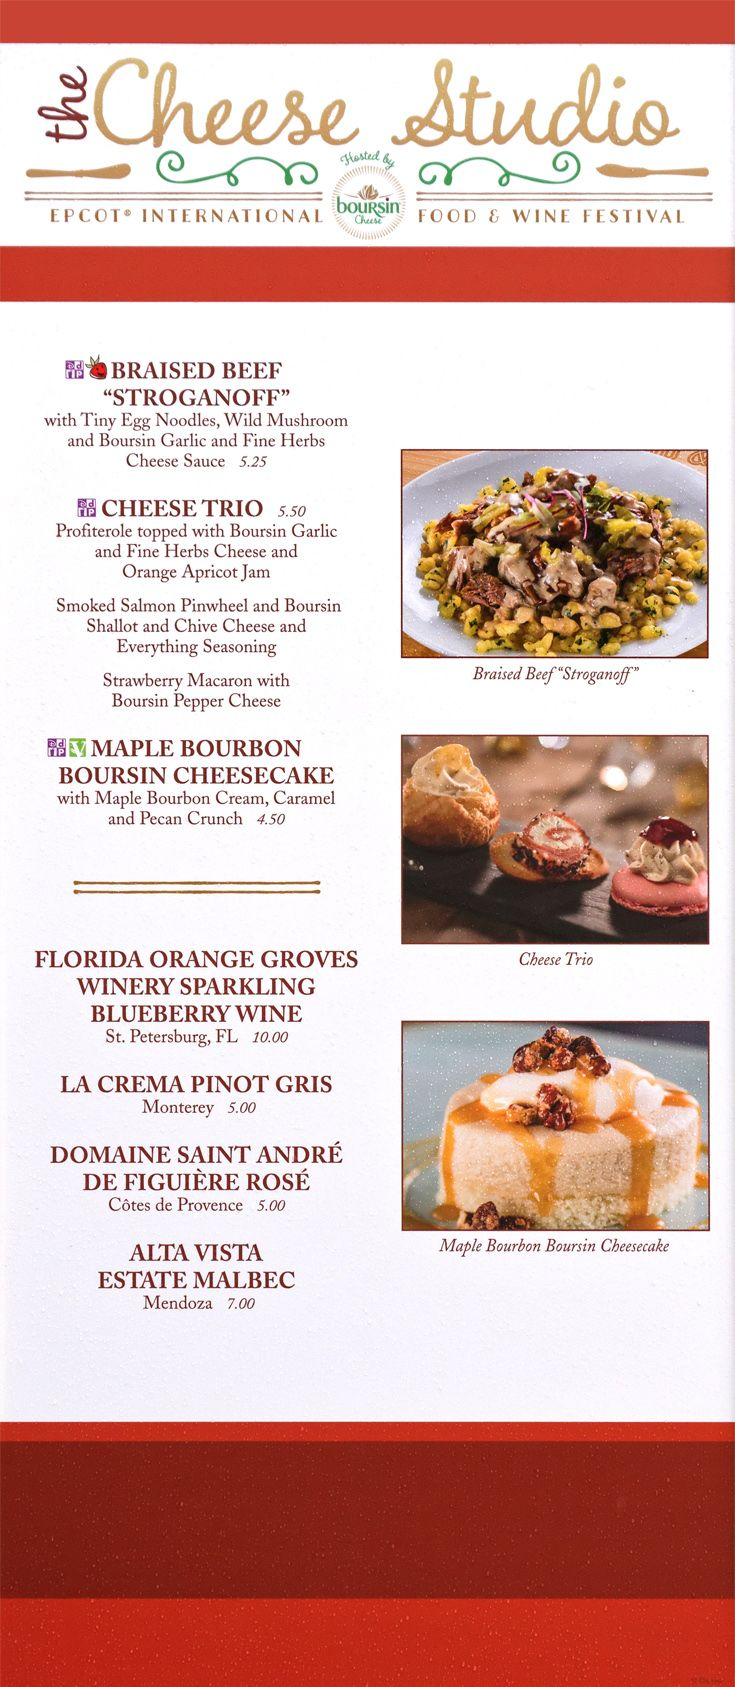 The Cheese Studio Booth Menu Board With Prices And Food Photos From